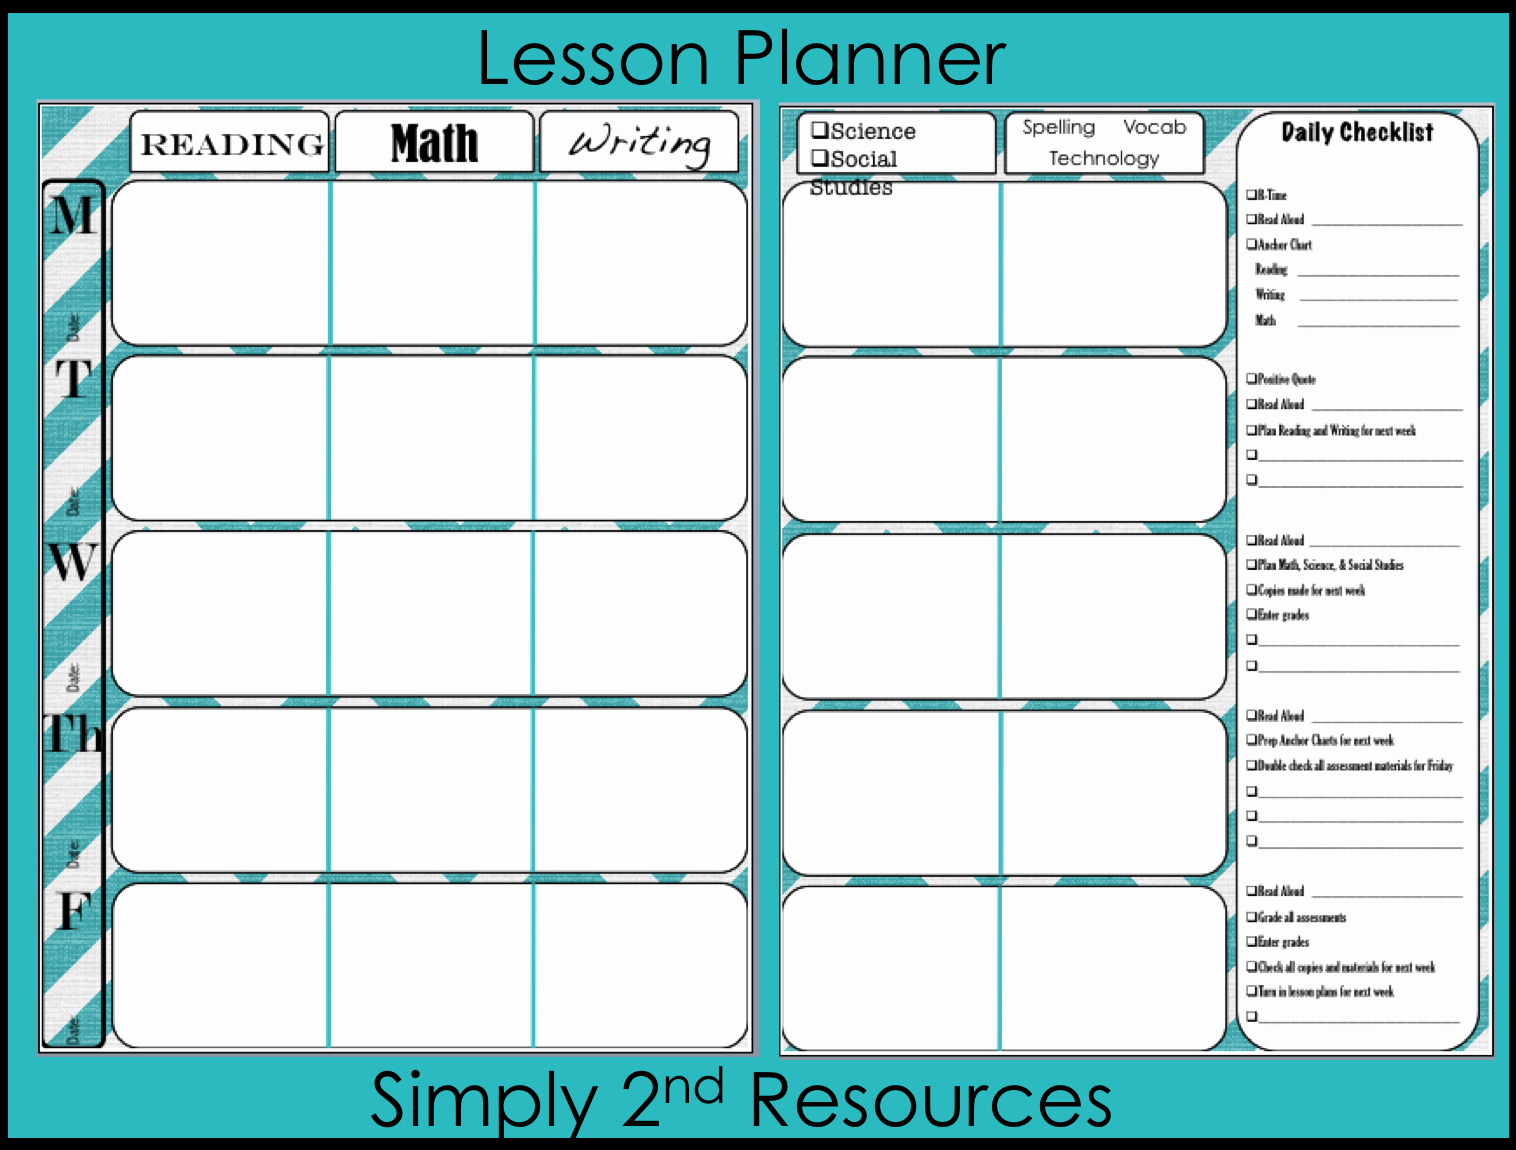 Weekly Lesson Plan Templates Free Elegant Simply 2nd Resources Throwback Thursday Linky